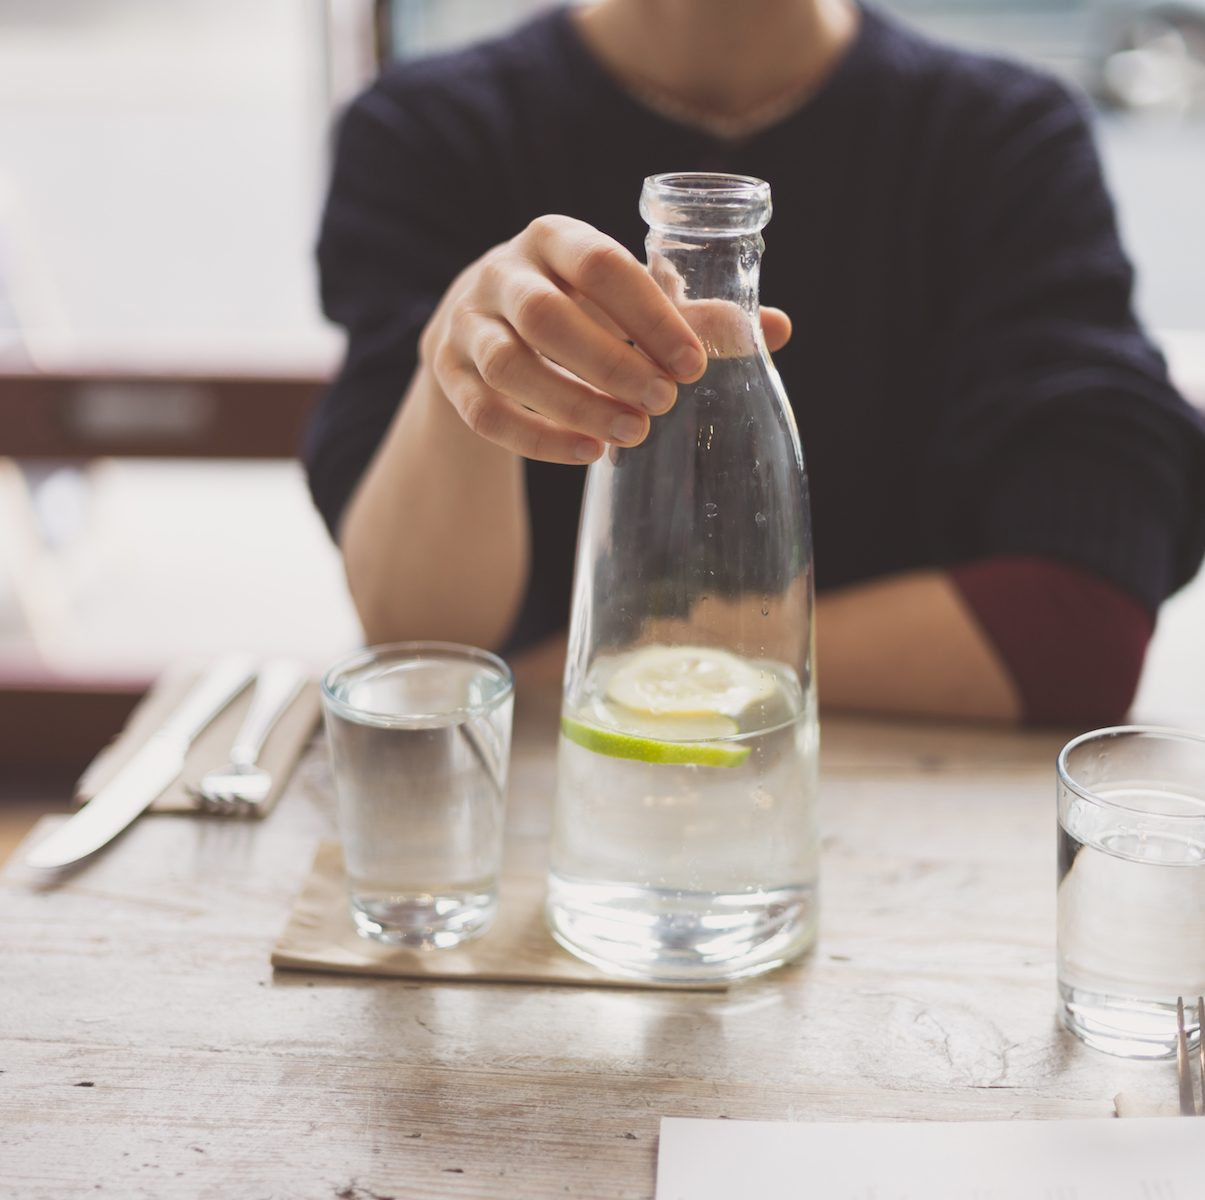 A young woman is sitting at a table in a restaurant and is drinking water